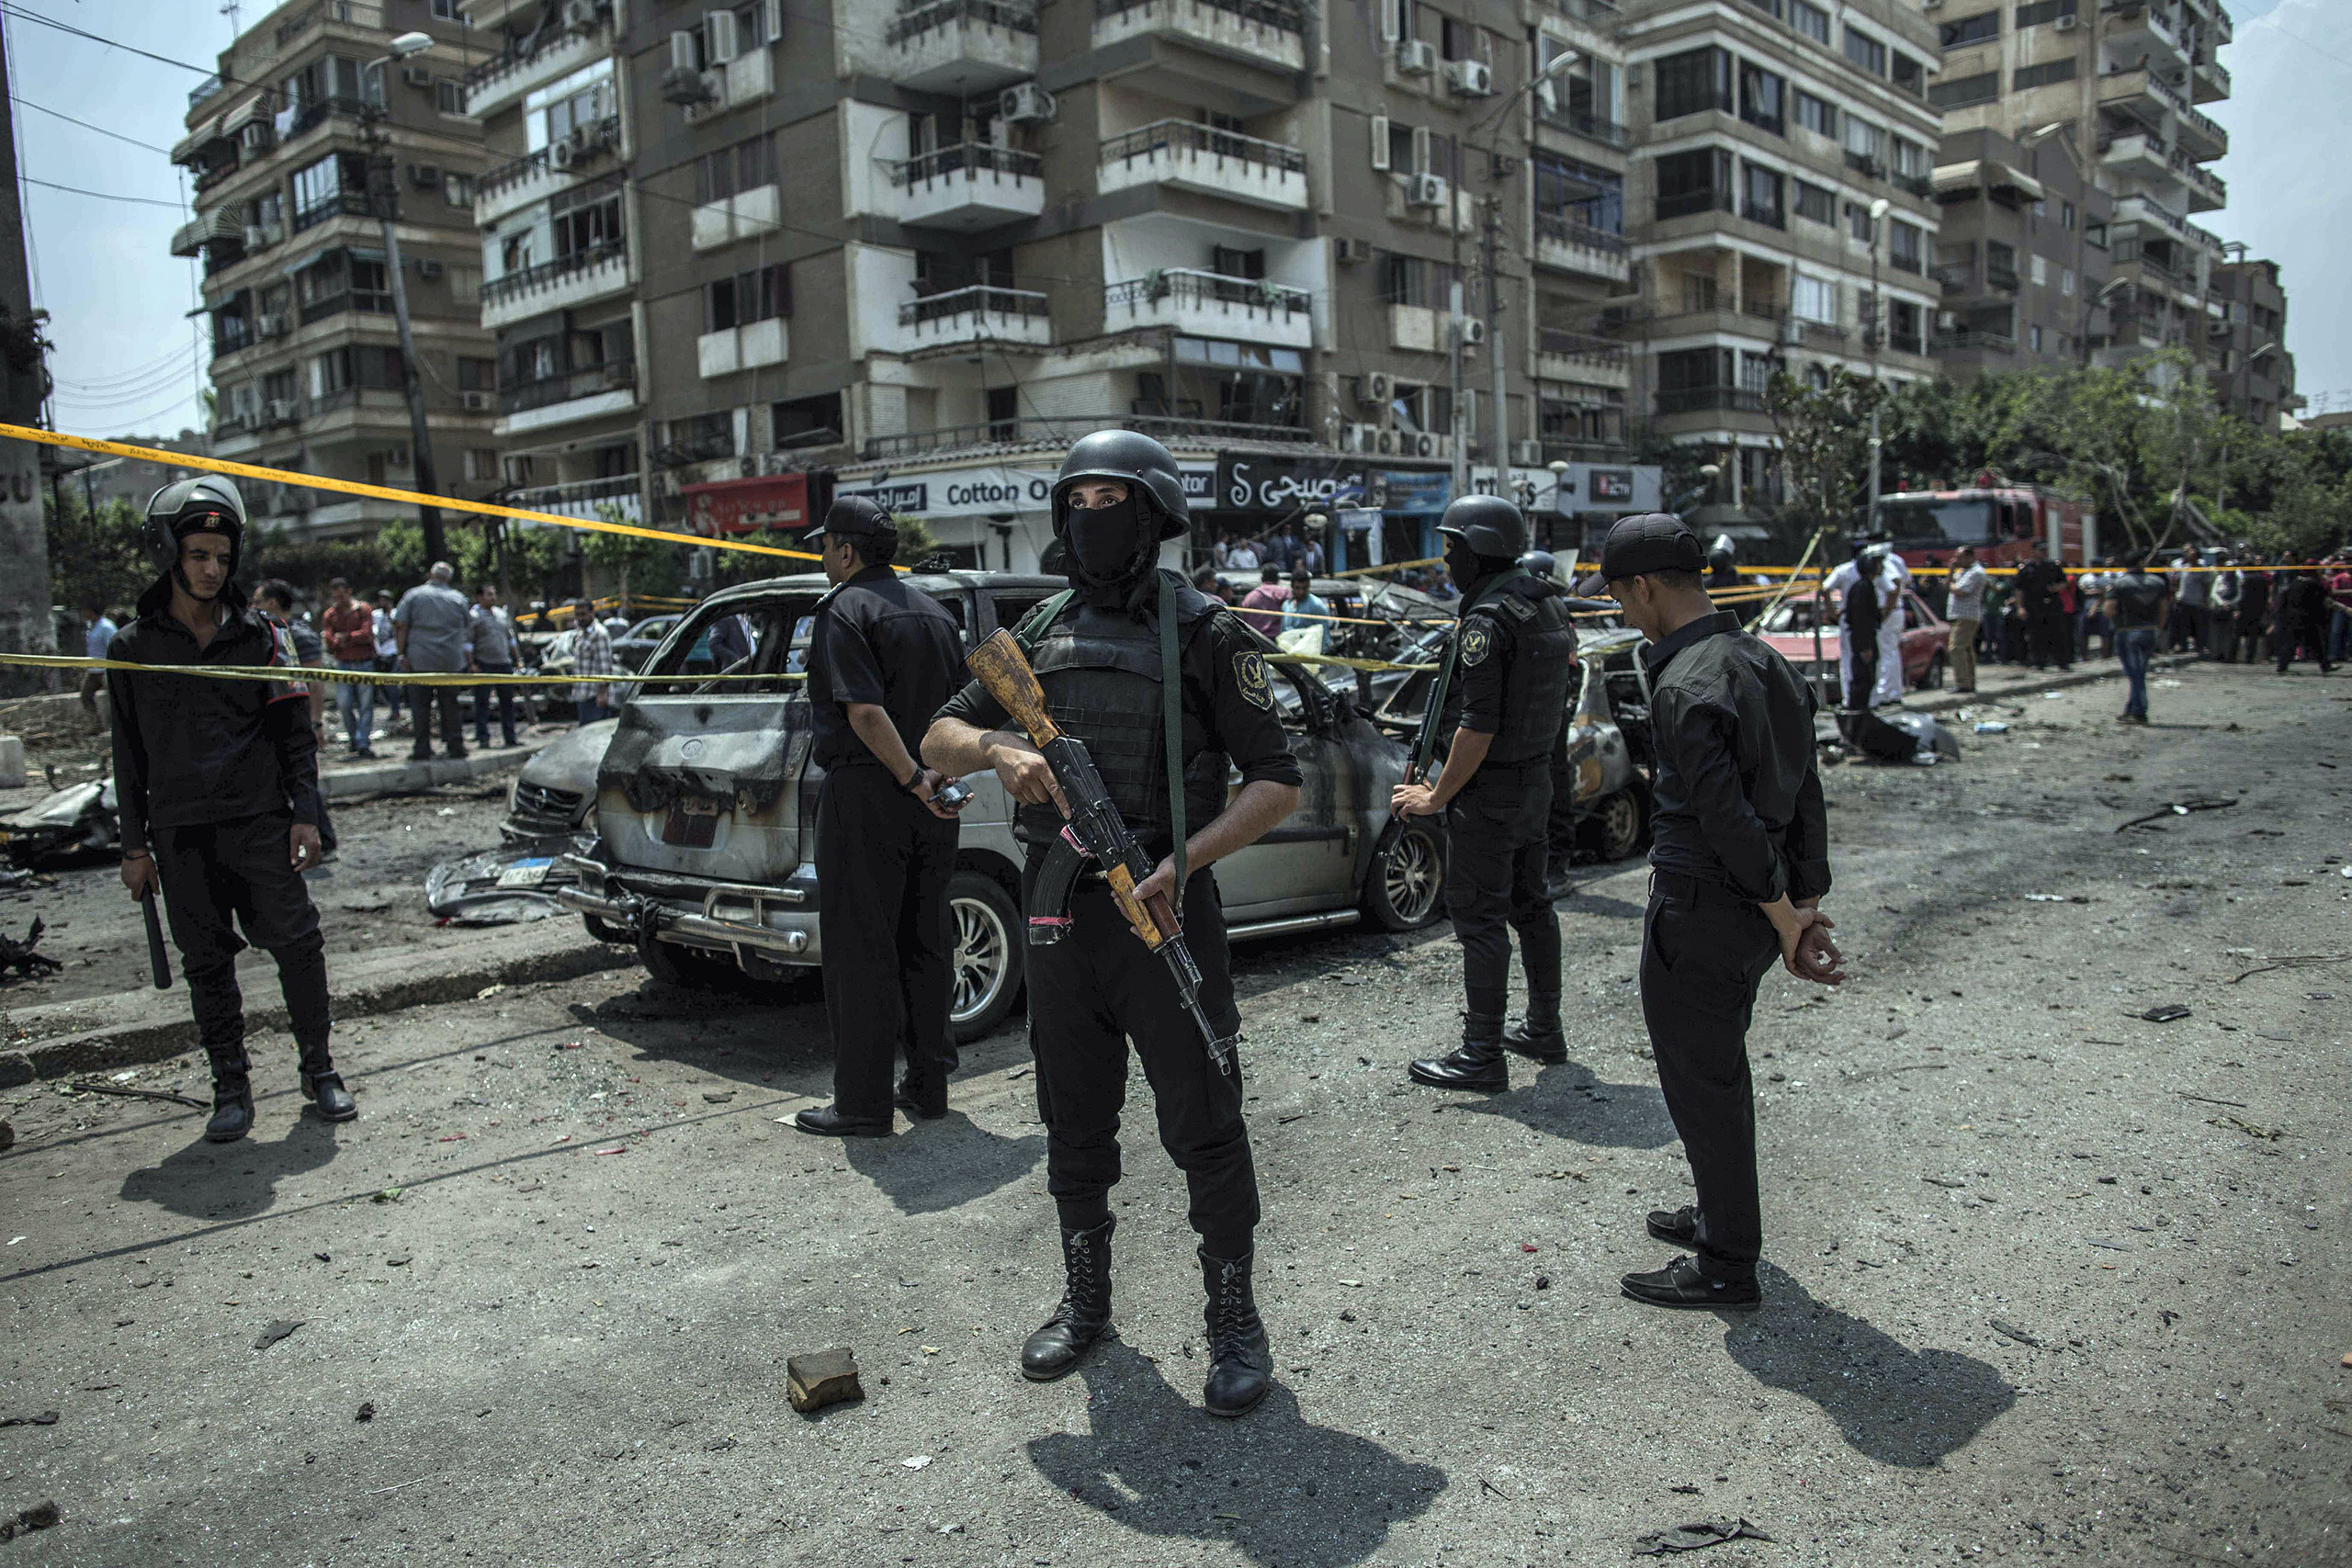 In this June 29, 2015, file photo, Egyptian policemen stand guard at the site of a bombing that killed Egypt's top prosecutor, Hisham Barakat, who oversaw cases against thousands of Islamists, in Cairo, Egypt.